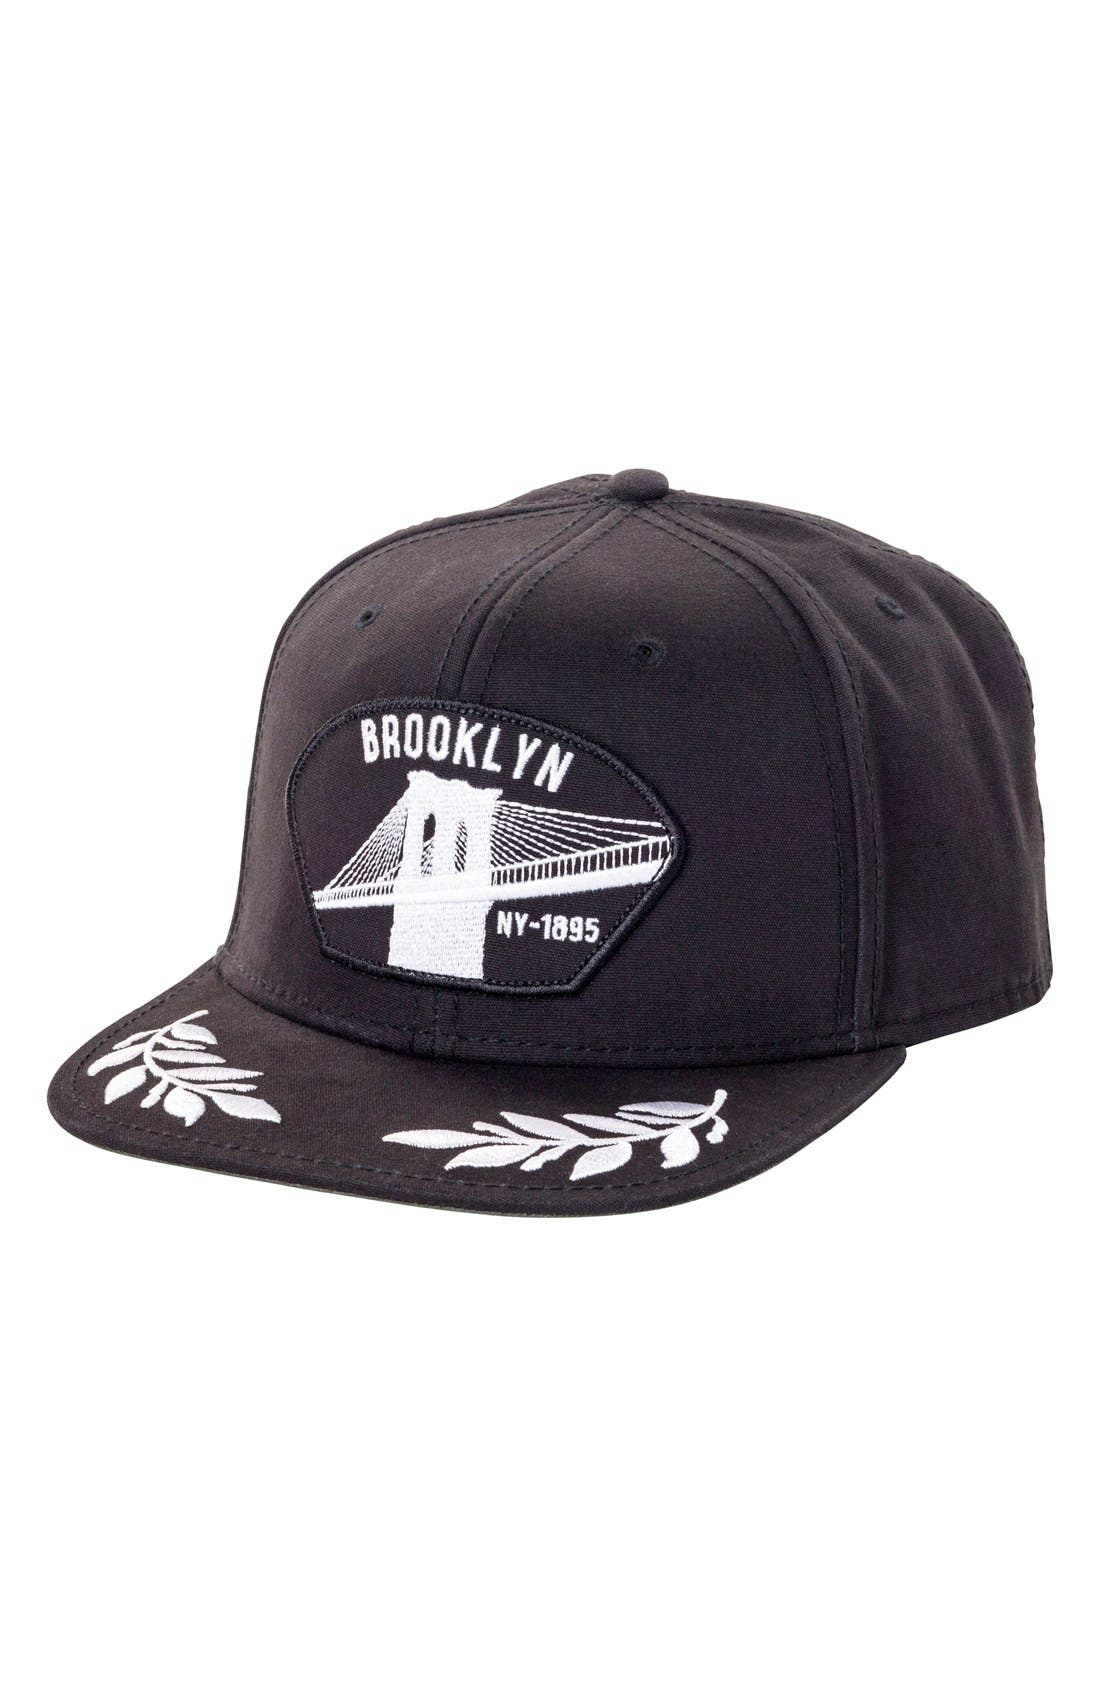 Main Image - Goorin Brothers 'Brooklyn NY' Baseball Cap